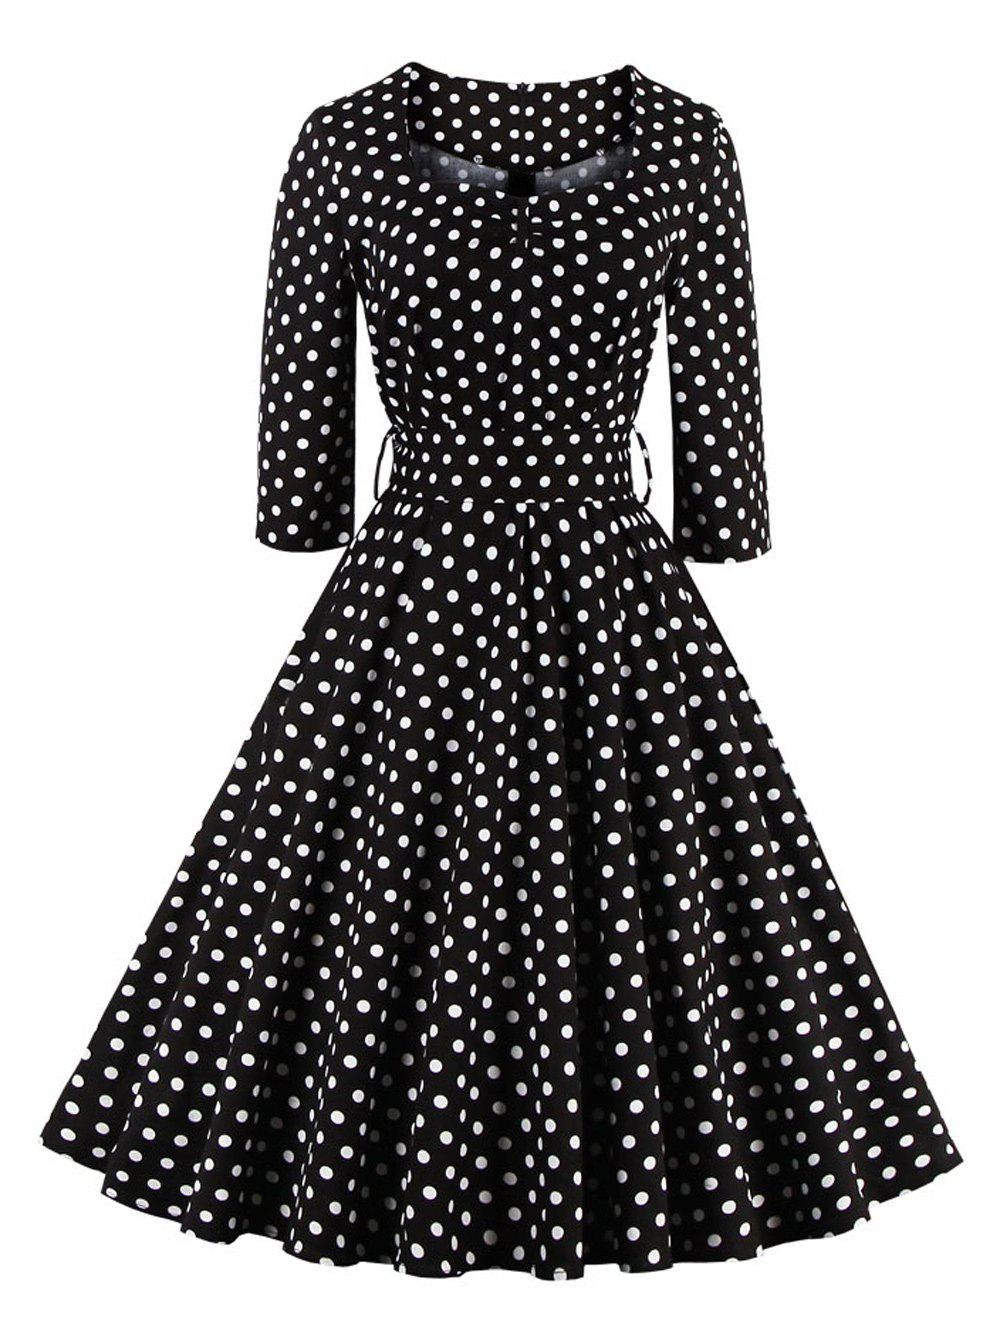 Retro Sweetheart Neck Polka Dot Printed Swing Flare Dress - BLACK XL